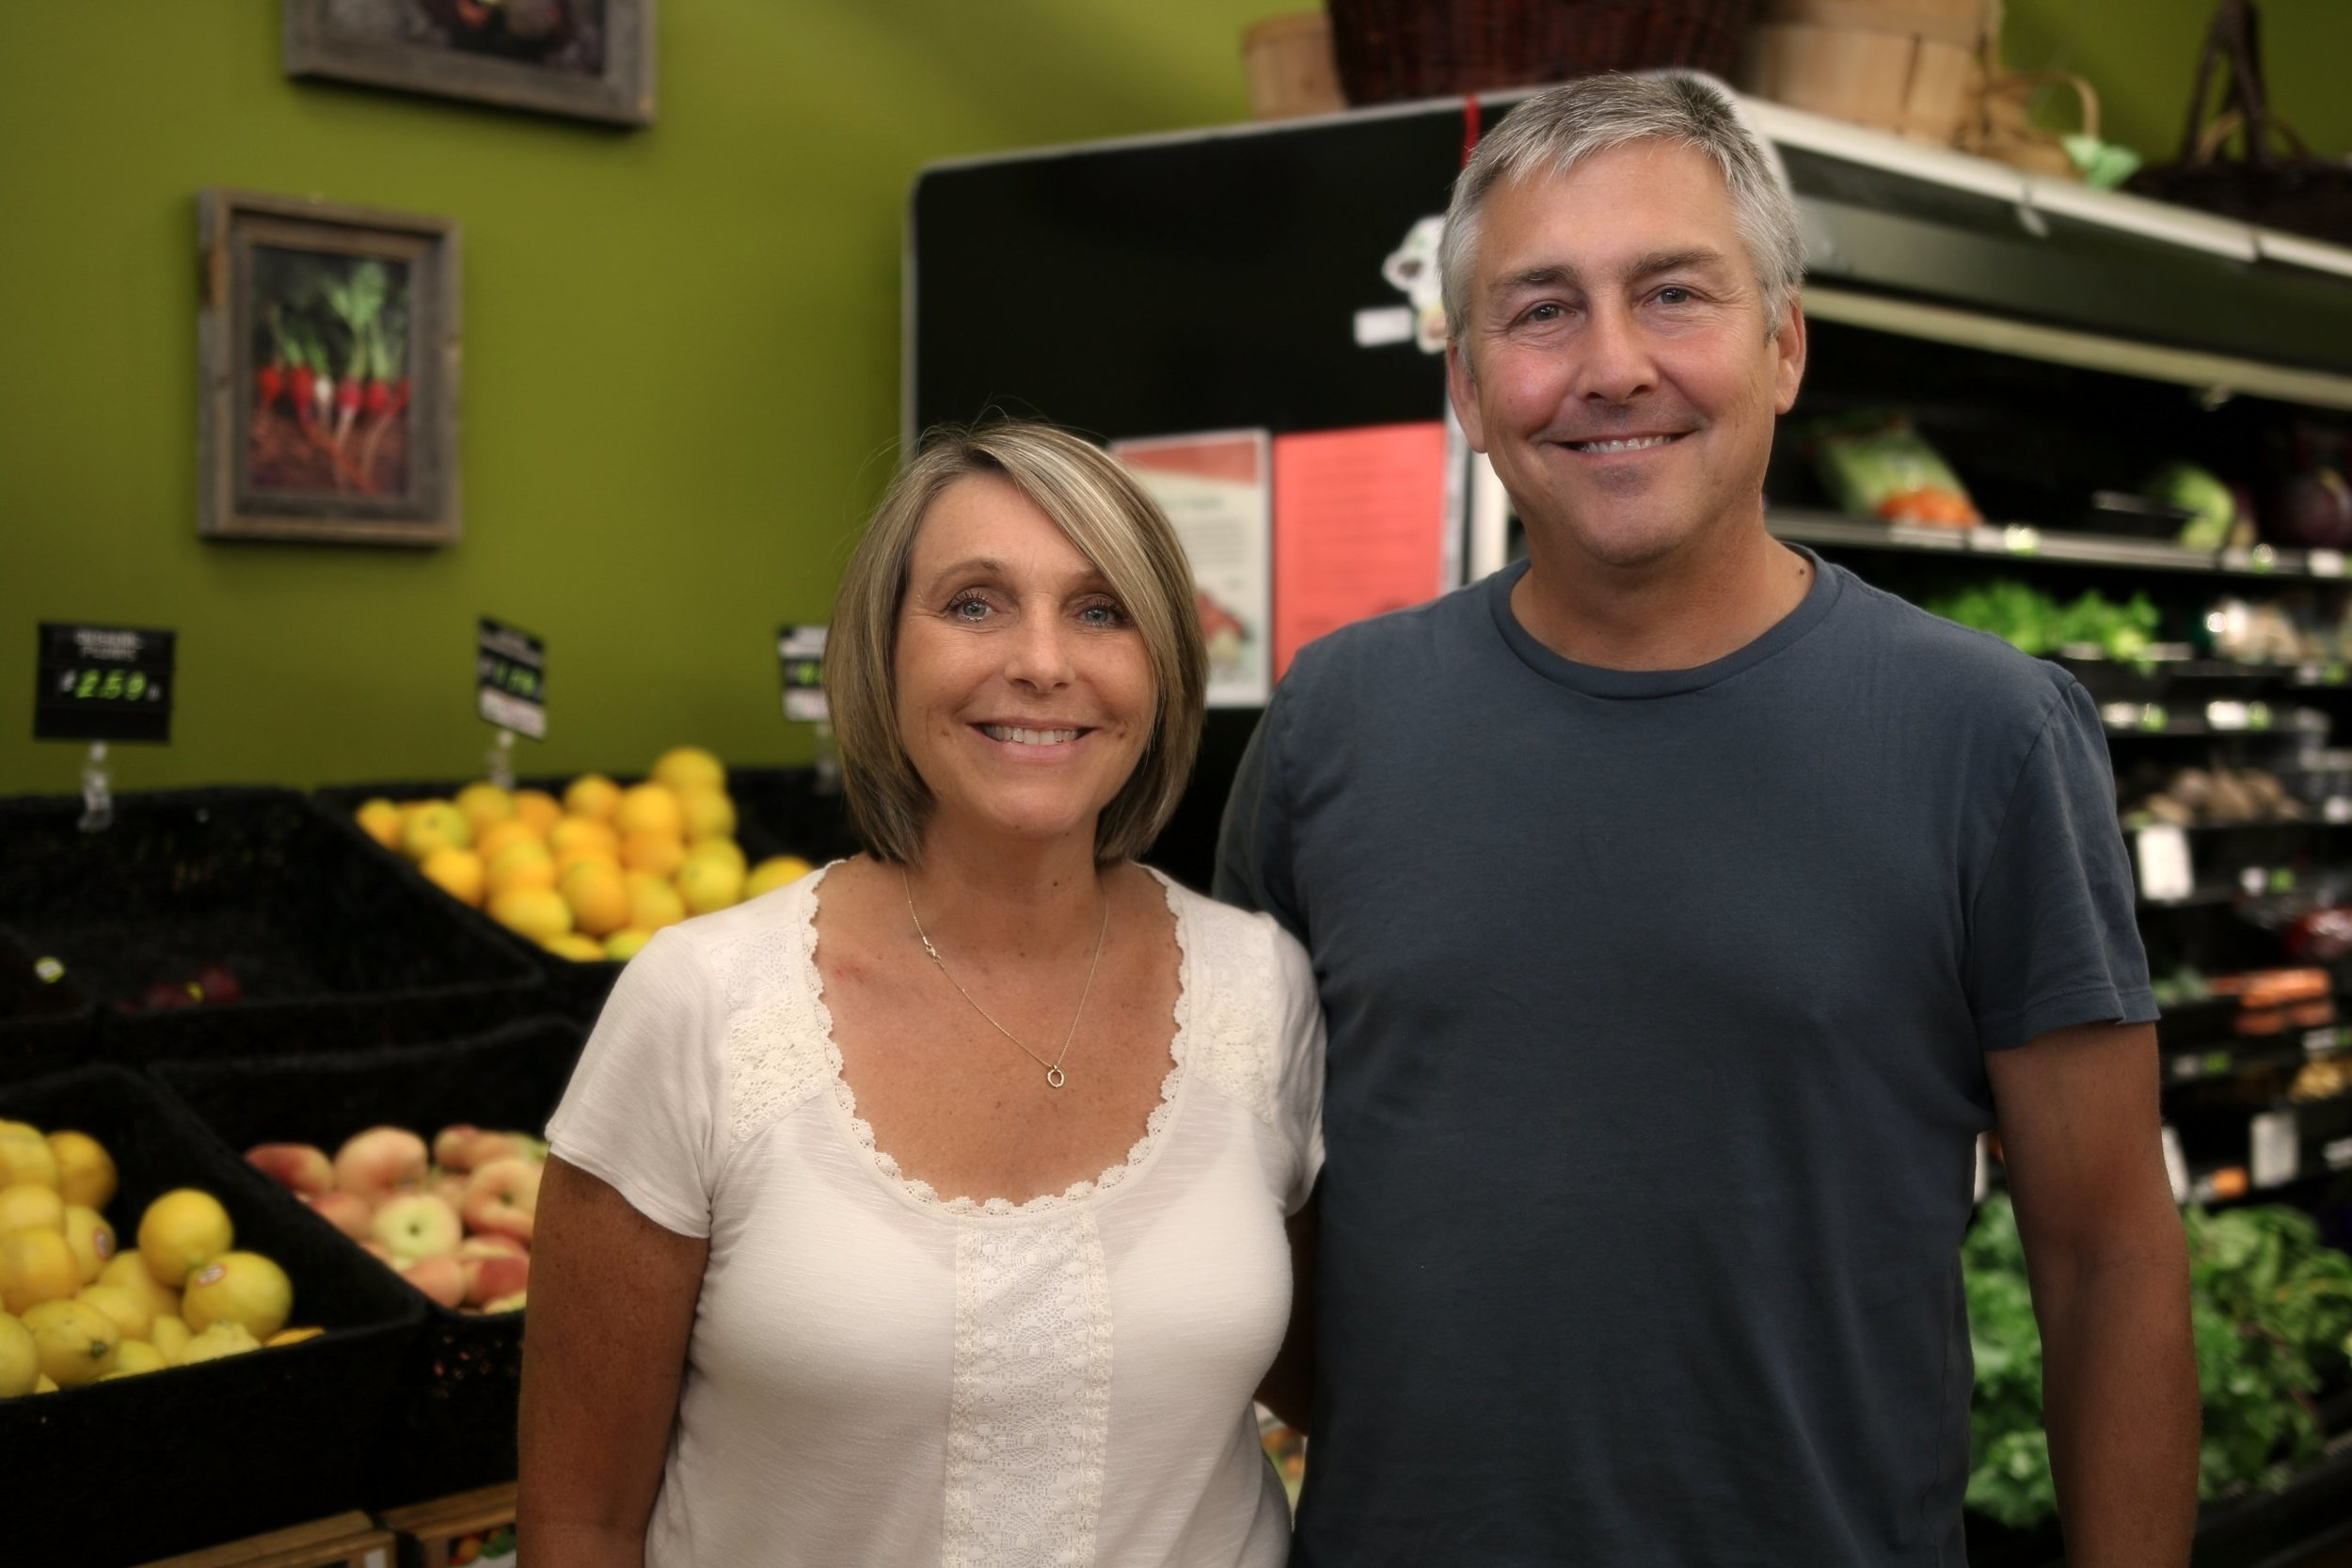 Kathie & Trace, Owners